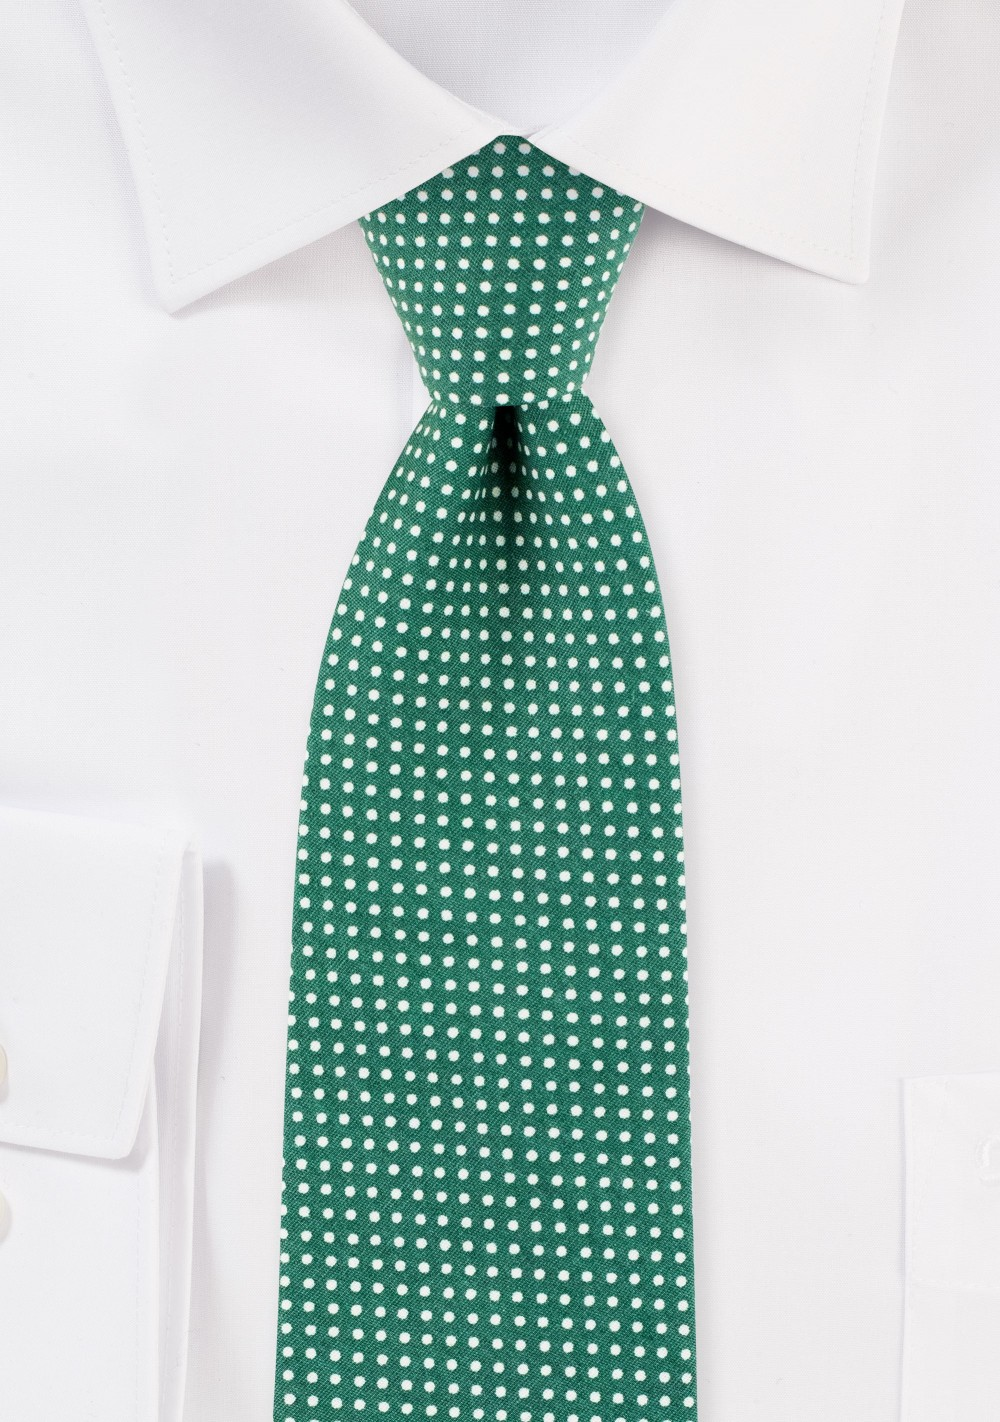 Kelly Green Slim Cut Cotton Tie with Micro Dots